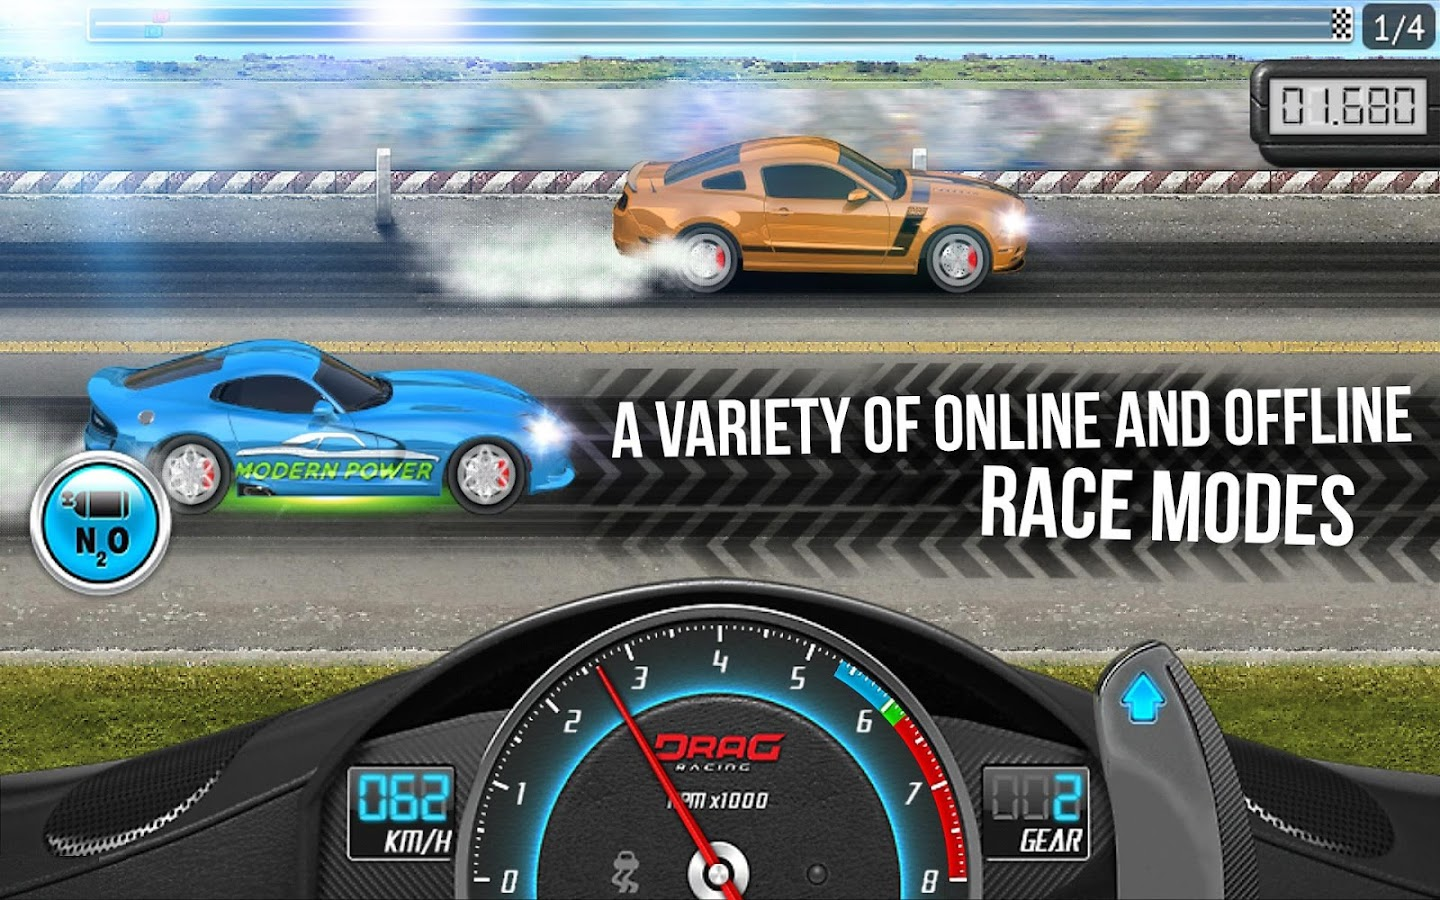 Drag Racing: Club Wars (2014) - Android Apps on Google Play